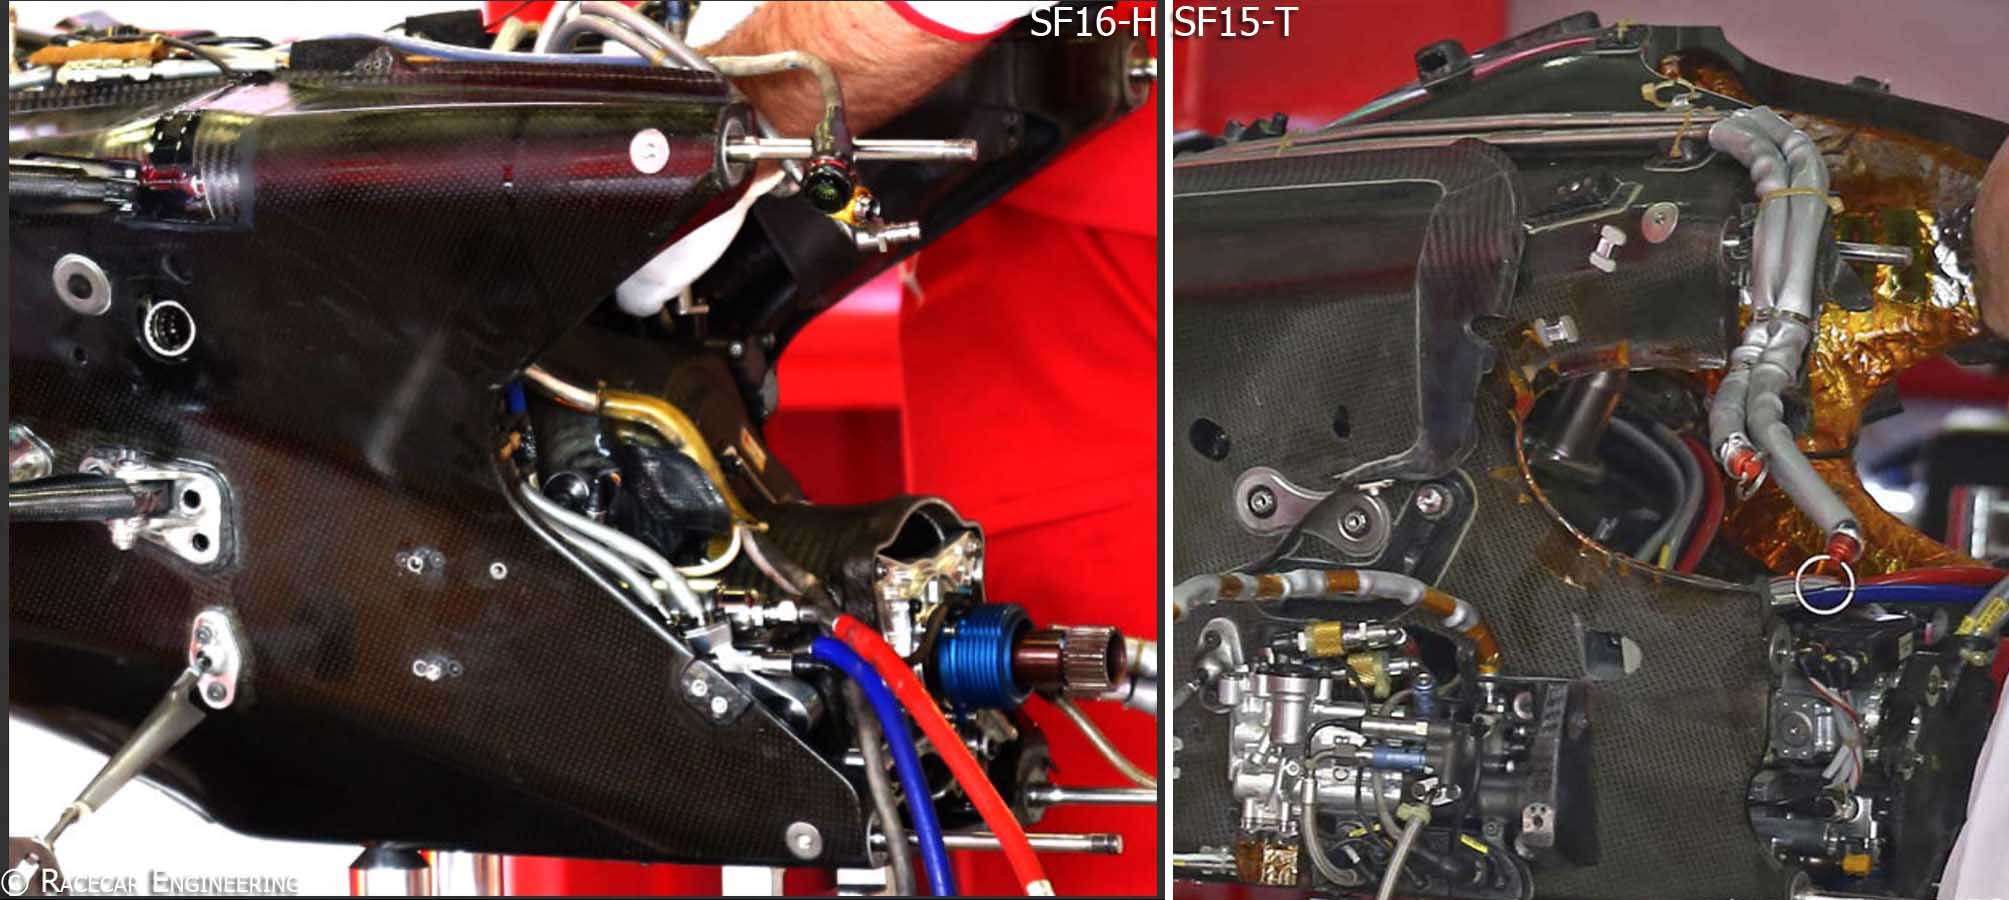 sf16-h-gearbox(2)